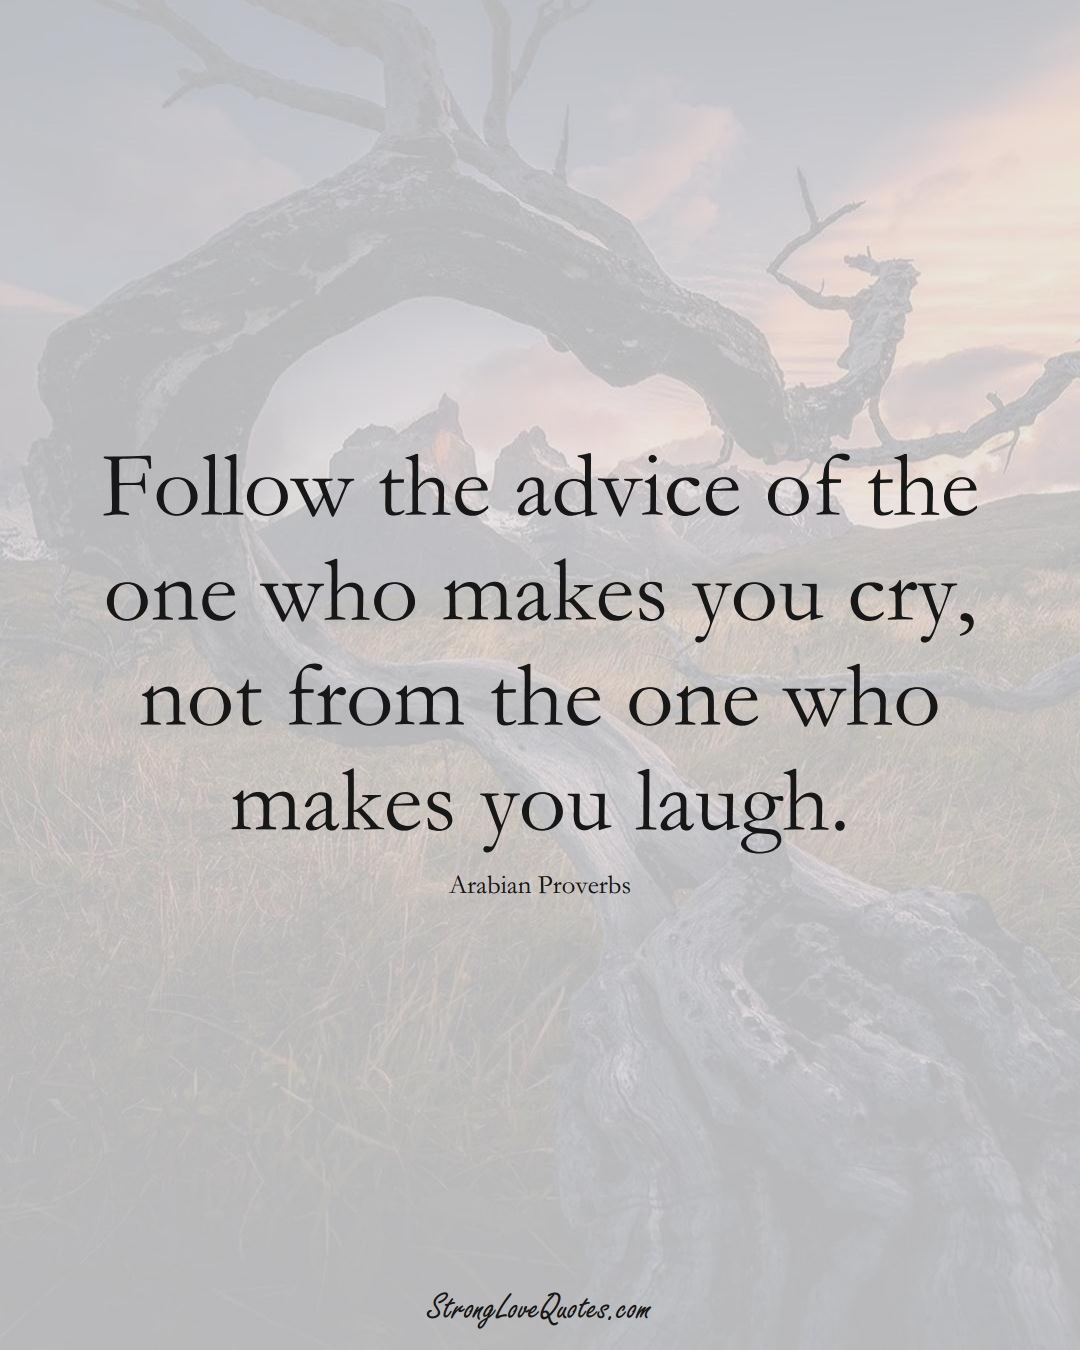 Follow the advice of the one who makes you cry, not from the one who makes you laugh. (Arabian Sayings);  #aVarietyofCulturesSayings